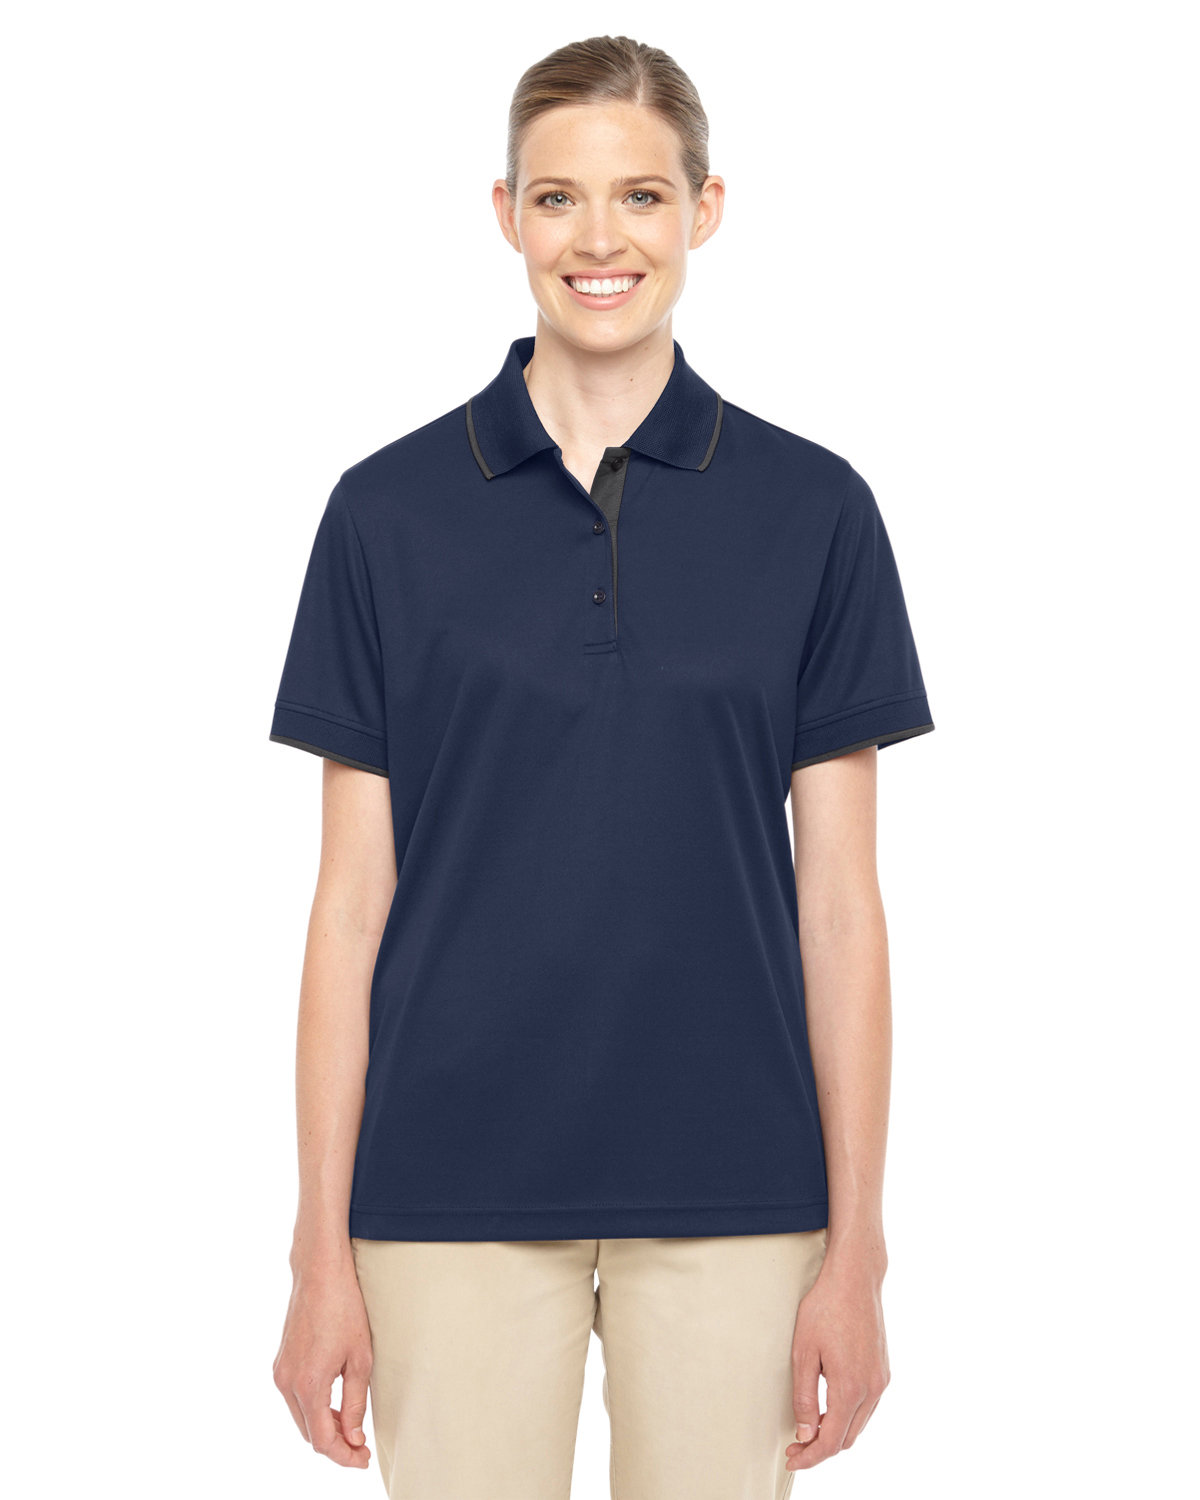 Core 365 Ladies' Motive Performance Piqué Polo with Tipped Collar CLASSC NVY/ CRBN